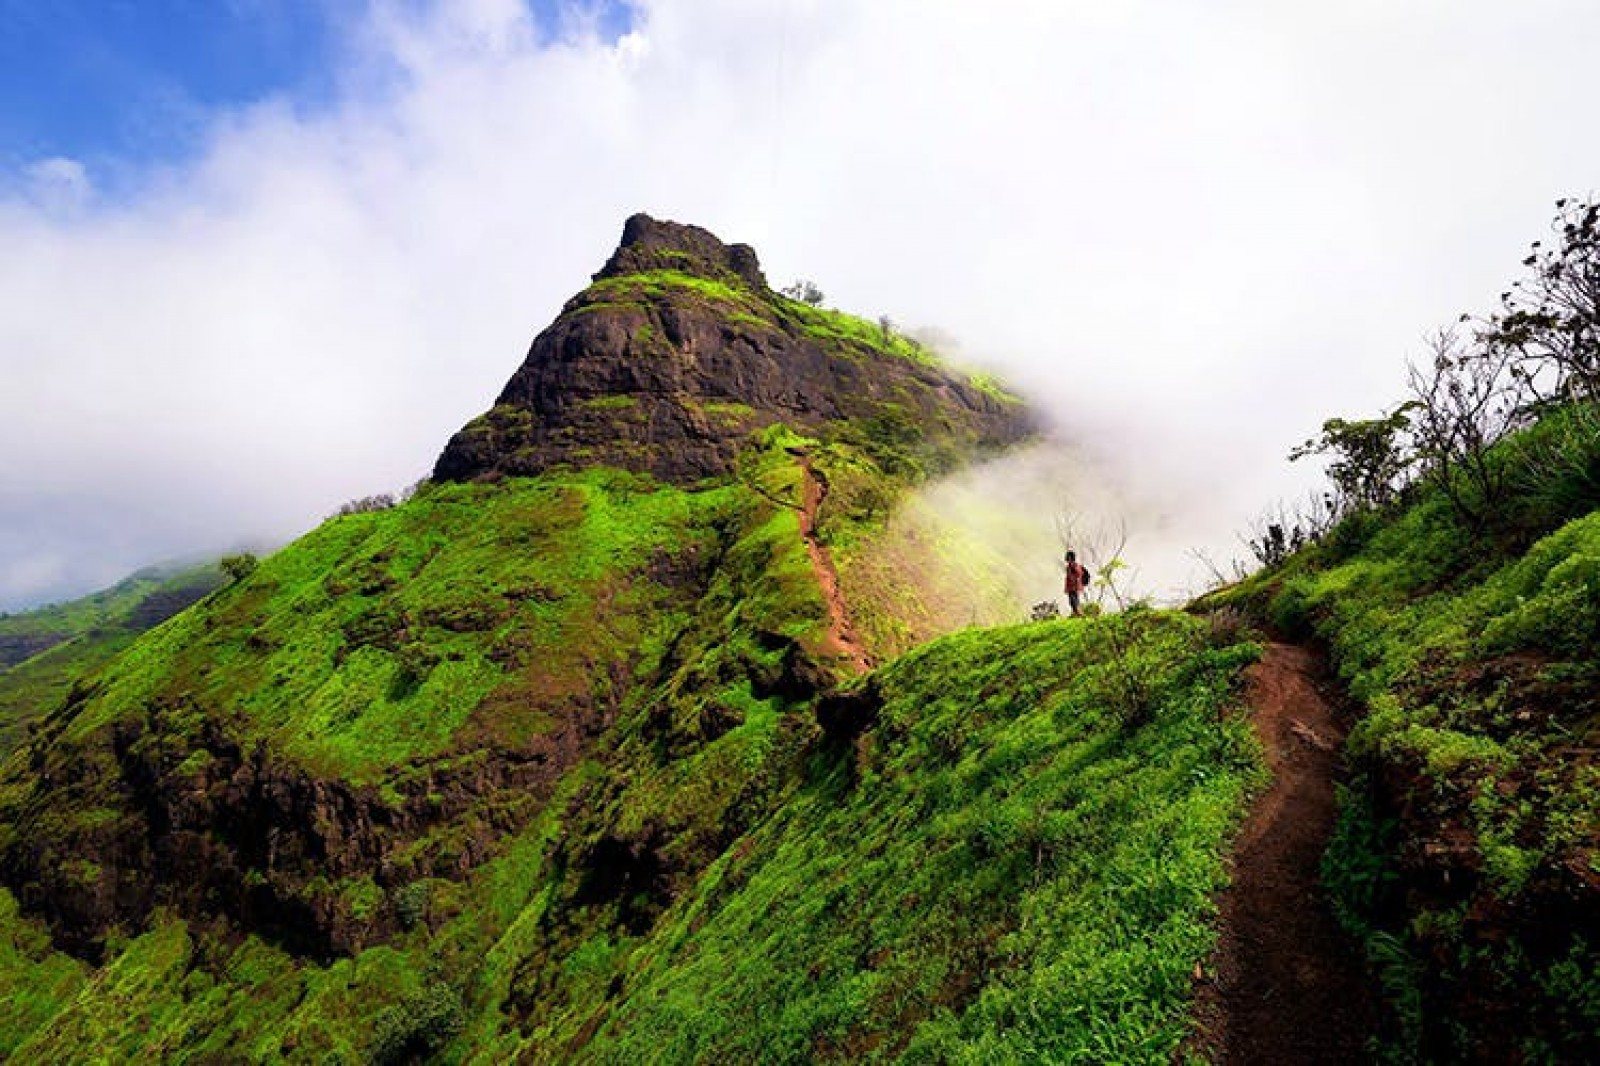 http://www.thegreatnext.com/Peb Fort Monsoon Trekking Sahyadris Maharashtra Pune The Great Next